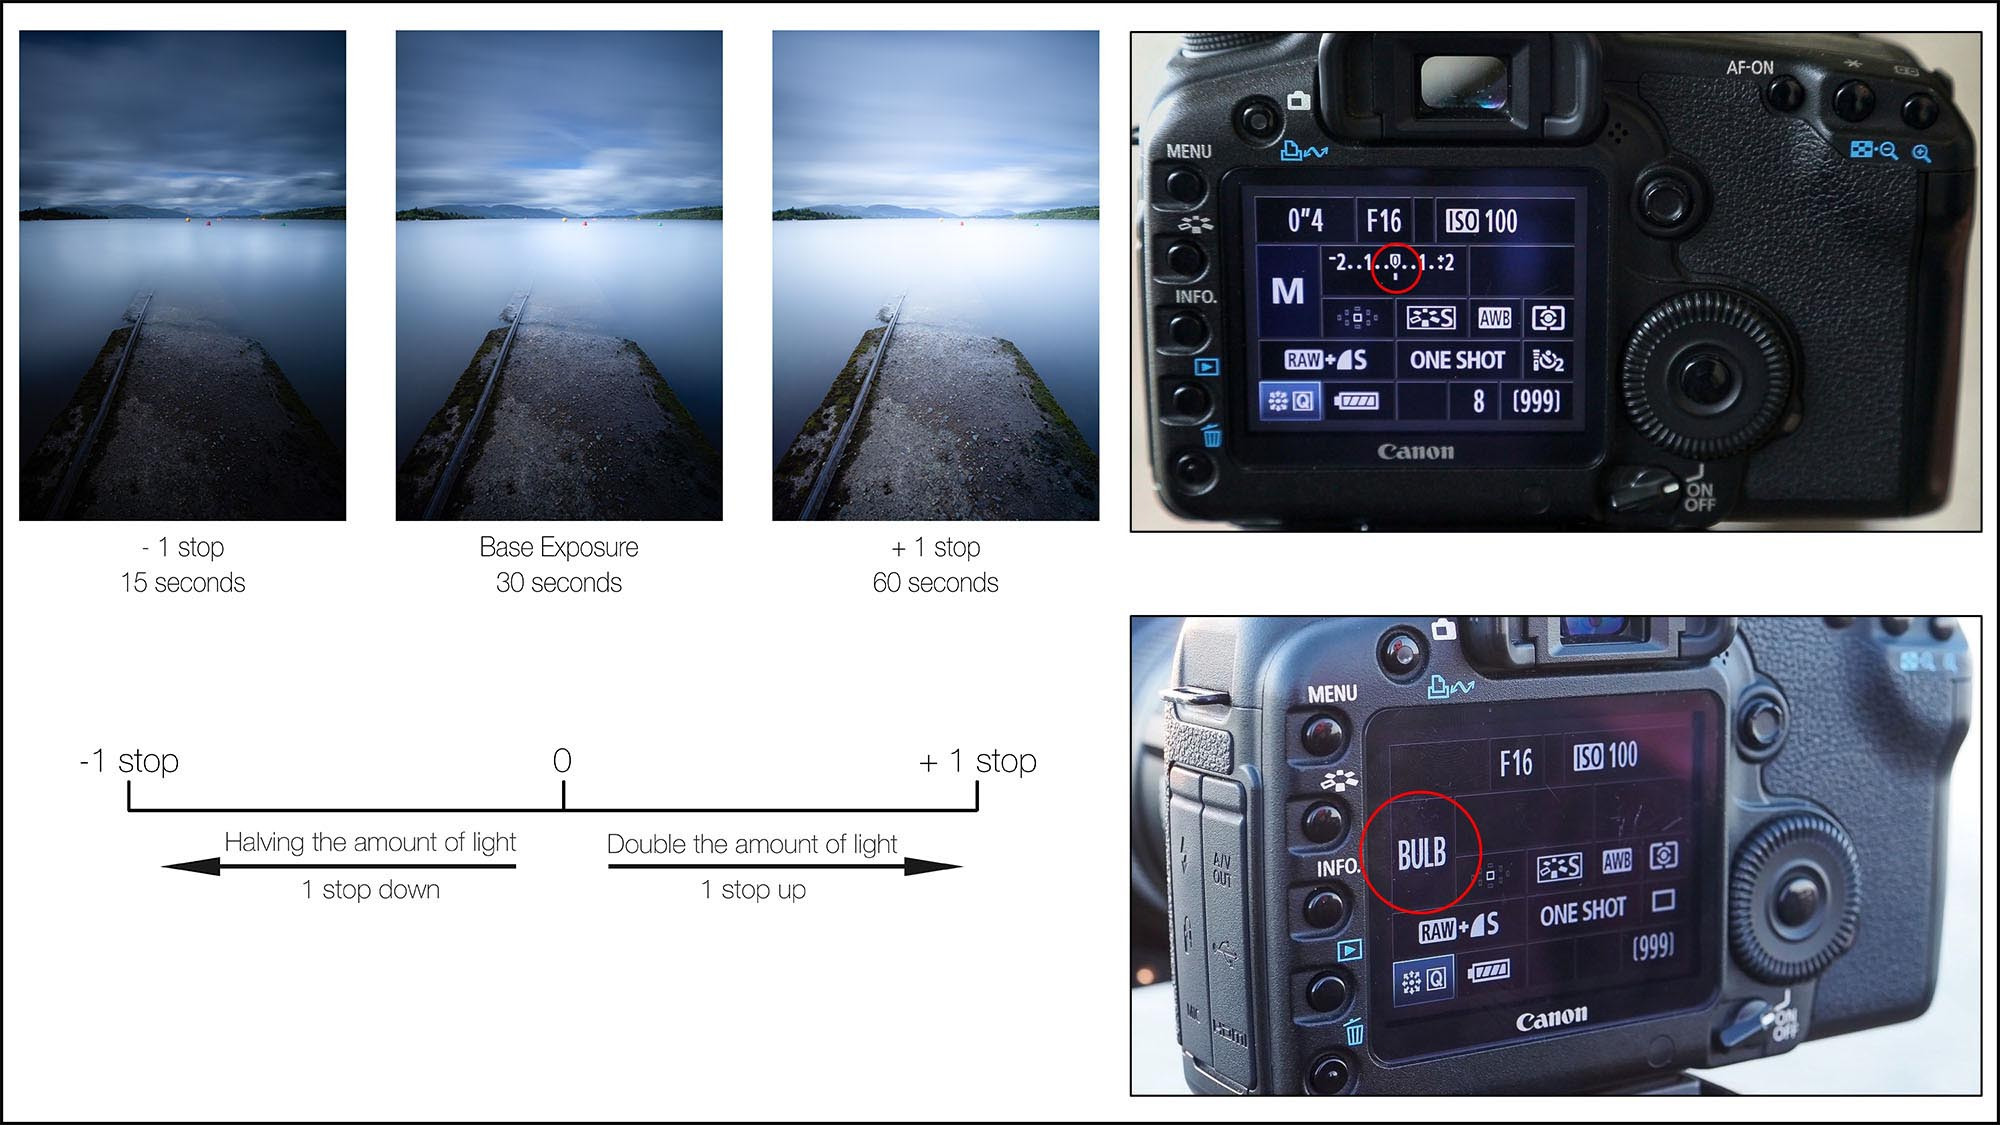 Lesson 3 – Camera Settings and Techniques - There are general settings and techniques commonly used in this type of photography. In this lesson, I'll show you techniques to help you get the most out of any situation and teach you how to bracket shots and why this is essential. You'll learn what camera settings are best, how to take meter readings and expose correctly in fully manual modes, and how and when to use your bulb setting. Then you'll get practicing in these settings to make sure you fully understand them before we go out and take some pictures.